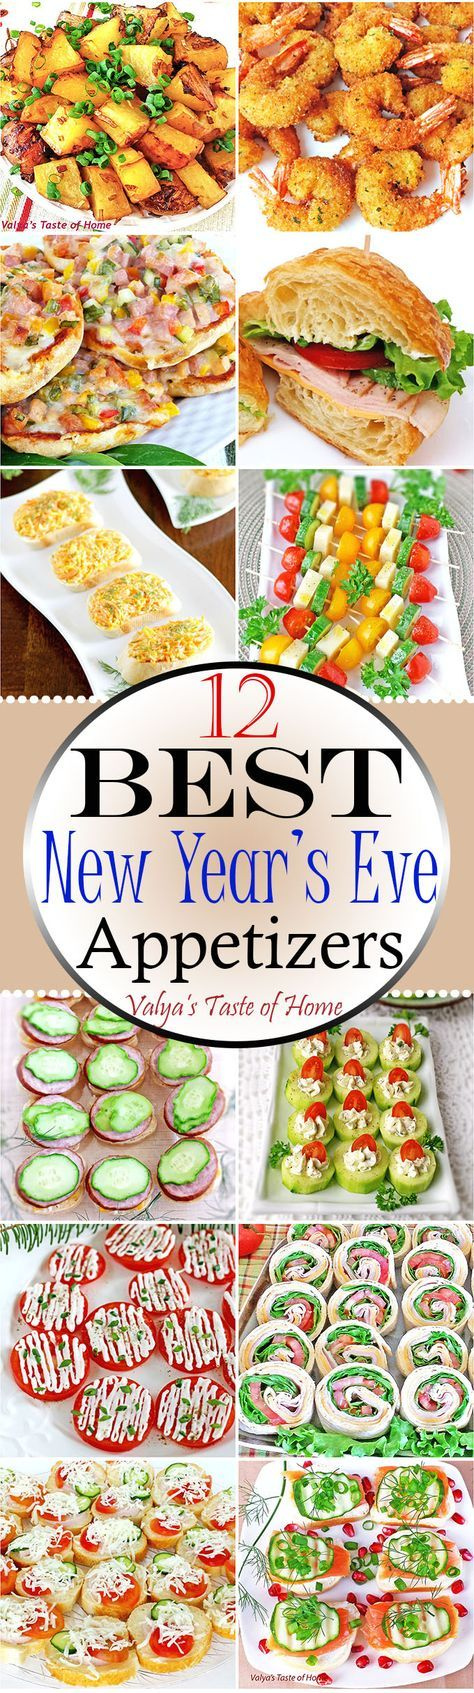 12 Best New Year's Eve Appetizers - Valya's Taste of Home